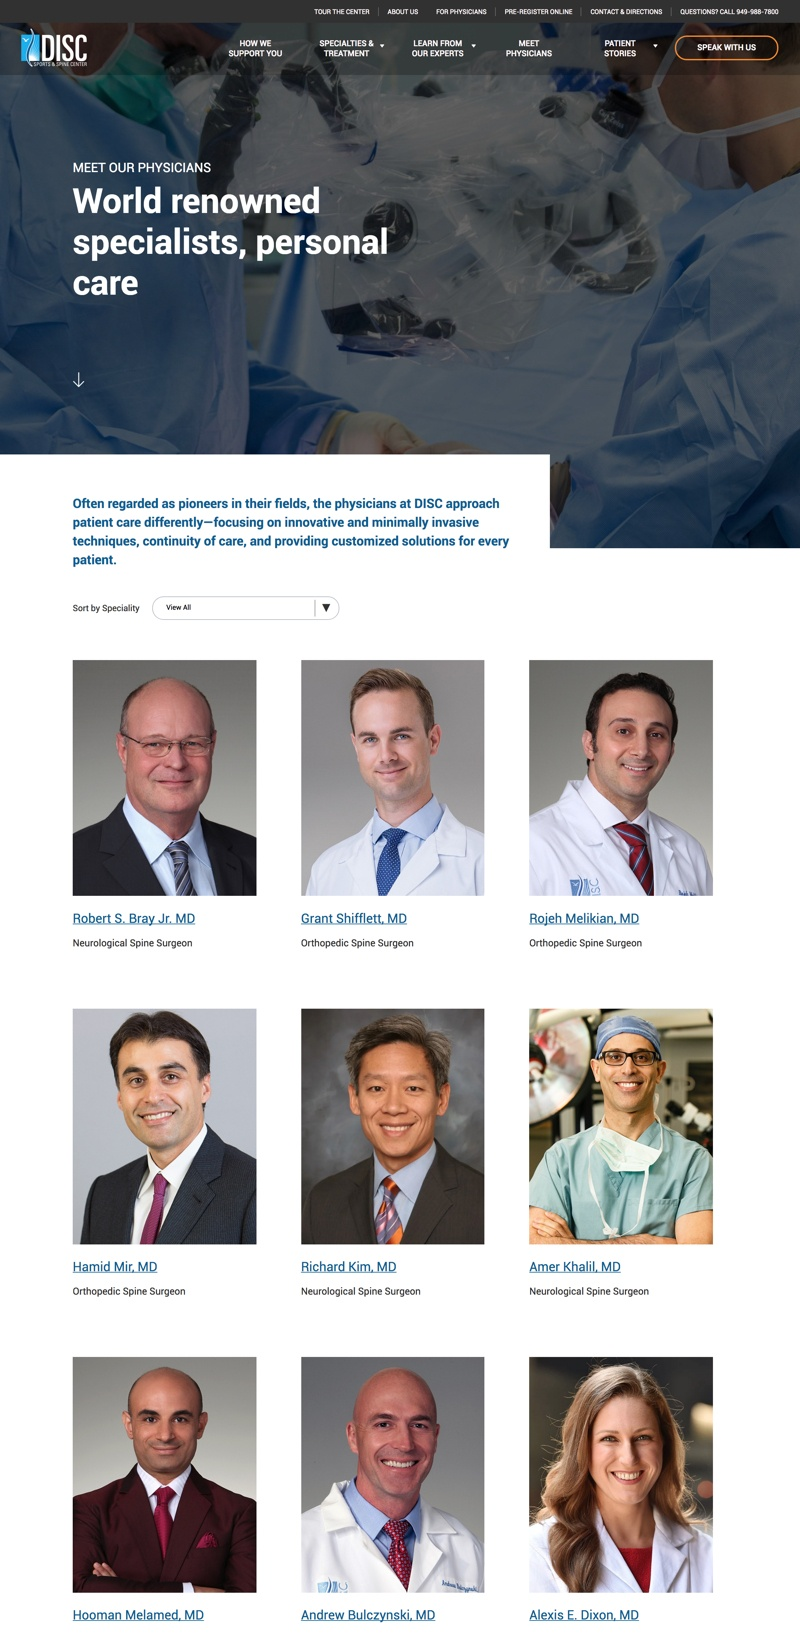 DISC web design showing medical professionals